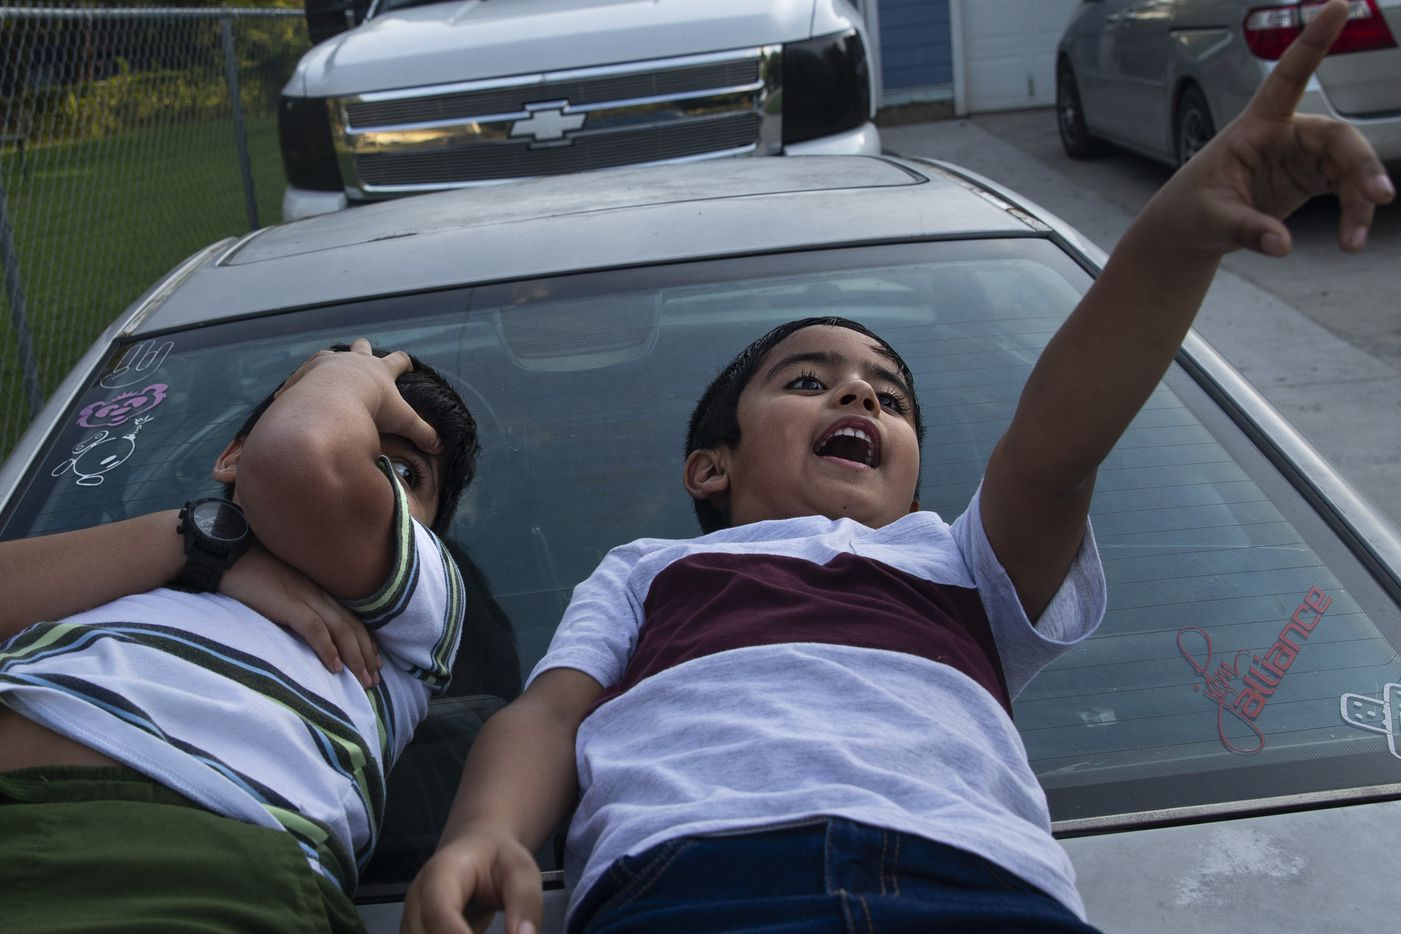 From left, brothers Jose Lara, 5, and Elias Lara, 7, gaze up at cloud shapes outside of their home in the Joppa neighborhood in South Dallas on Sunday, Aug. 2, 2020. The boys' family moved into their home, acquired through Habitat for Humanity, in 2016. Their mother Gabriela Medina said Joppa has been a great place to raise her children, and that the children are proud to tell their friends at school about the history of where they live.